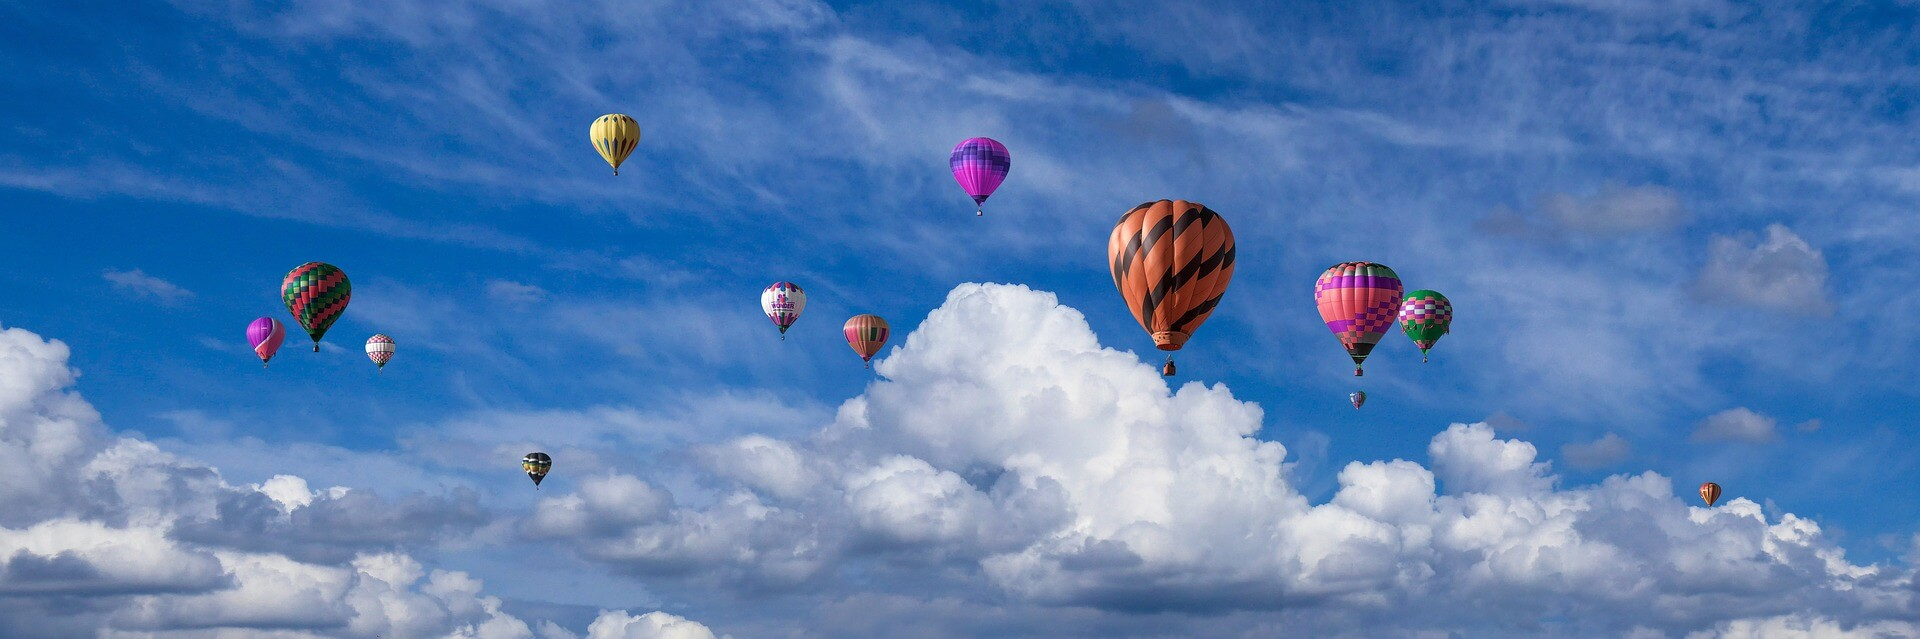 An image showing hot-air balloons flying high, like loan originators after reading this blog.